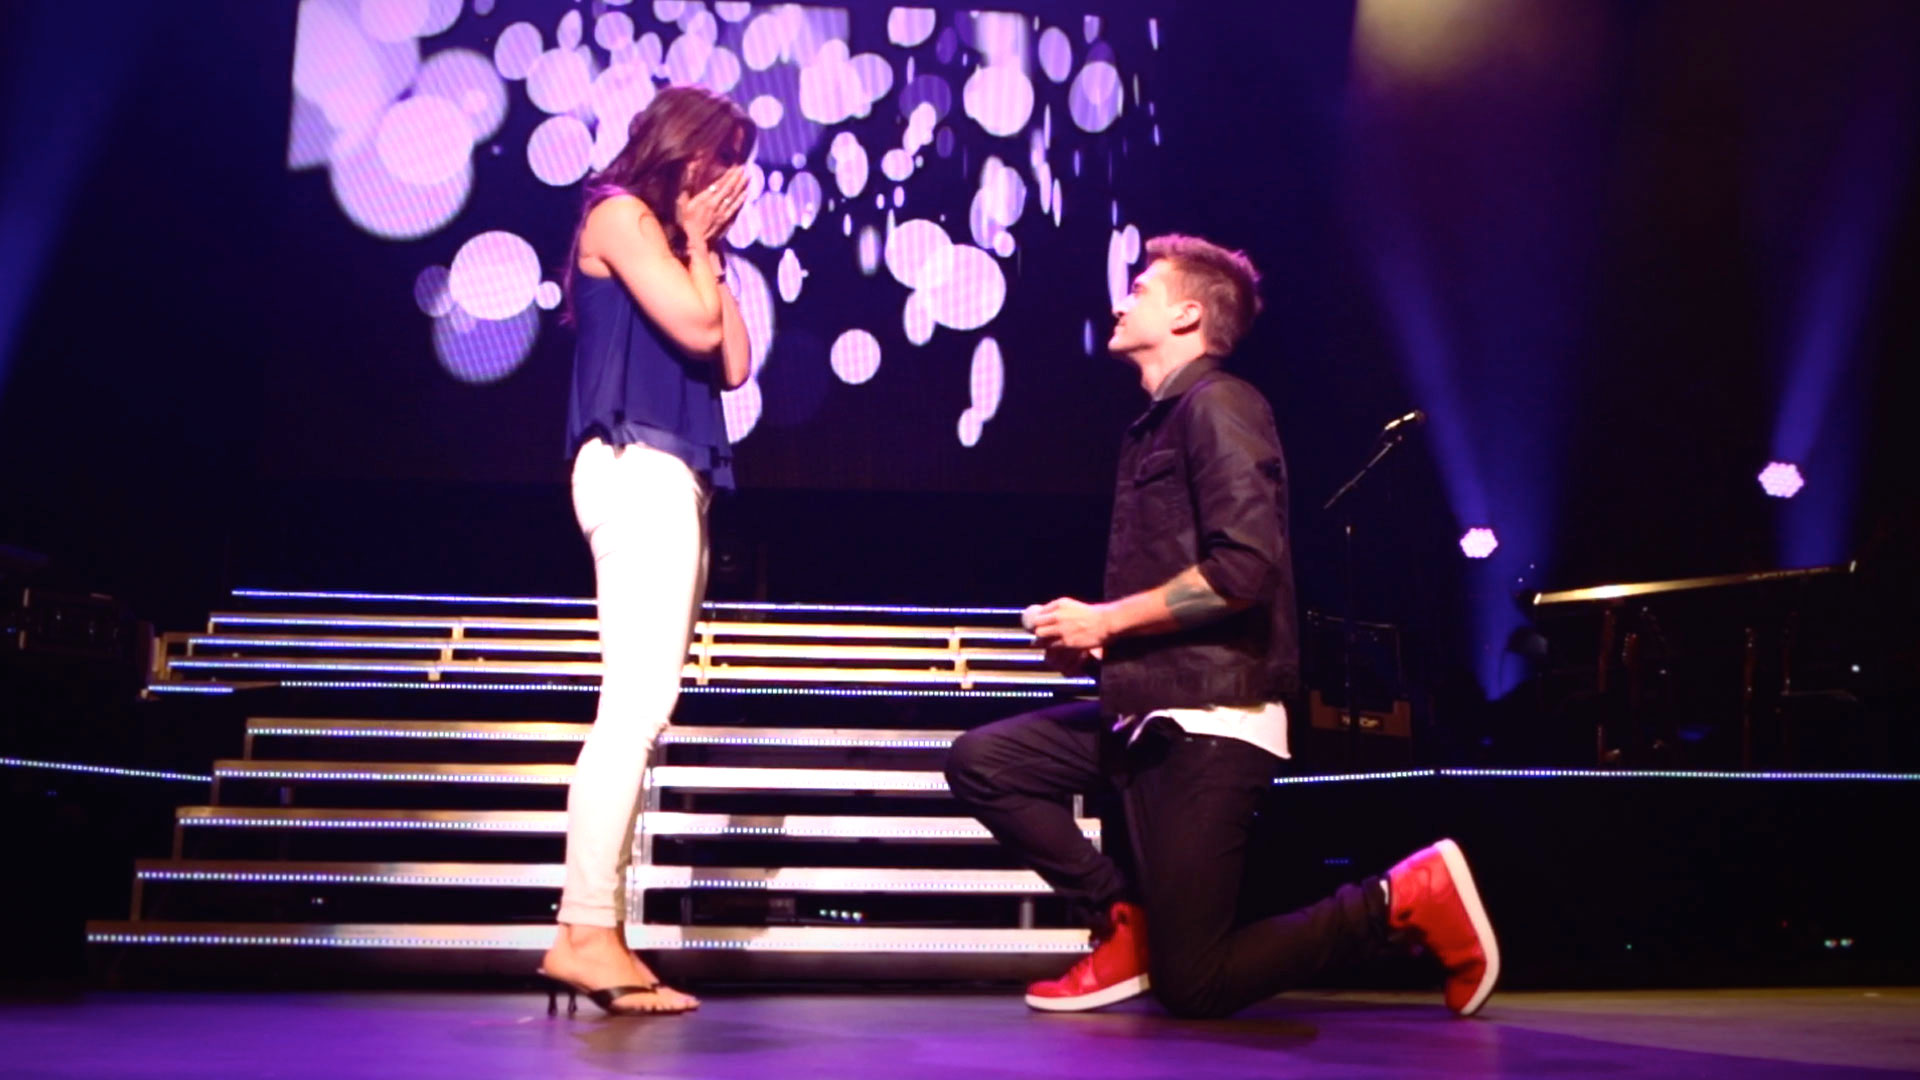 Jake Barker Proposes!